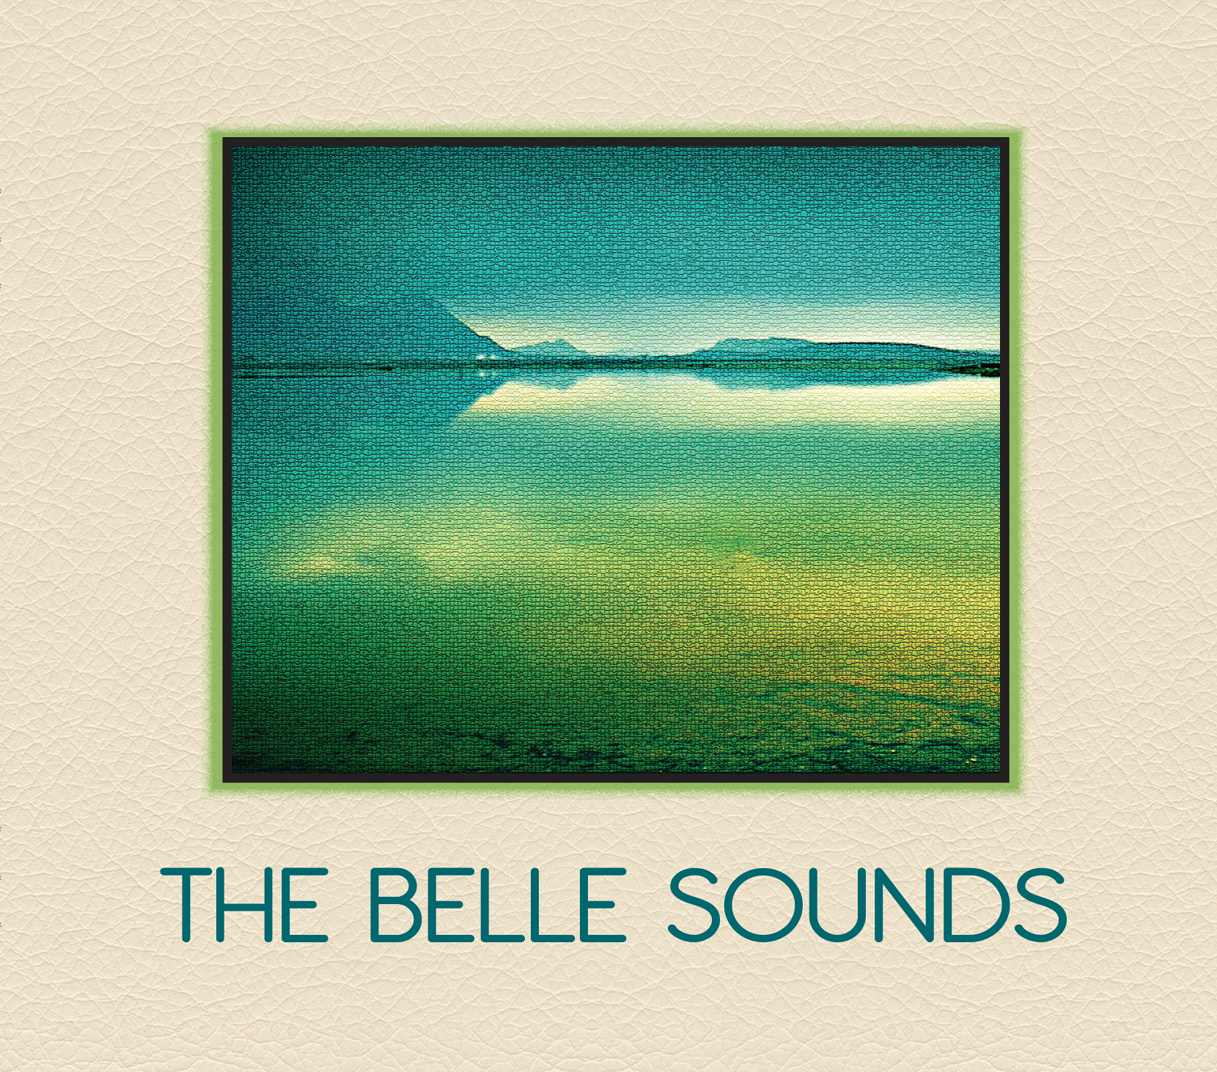 THE BELLE SOUNDS COVER